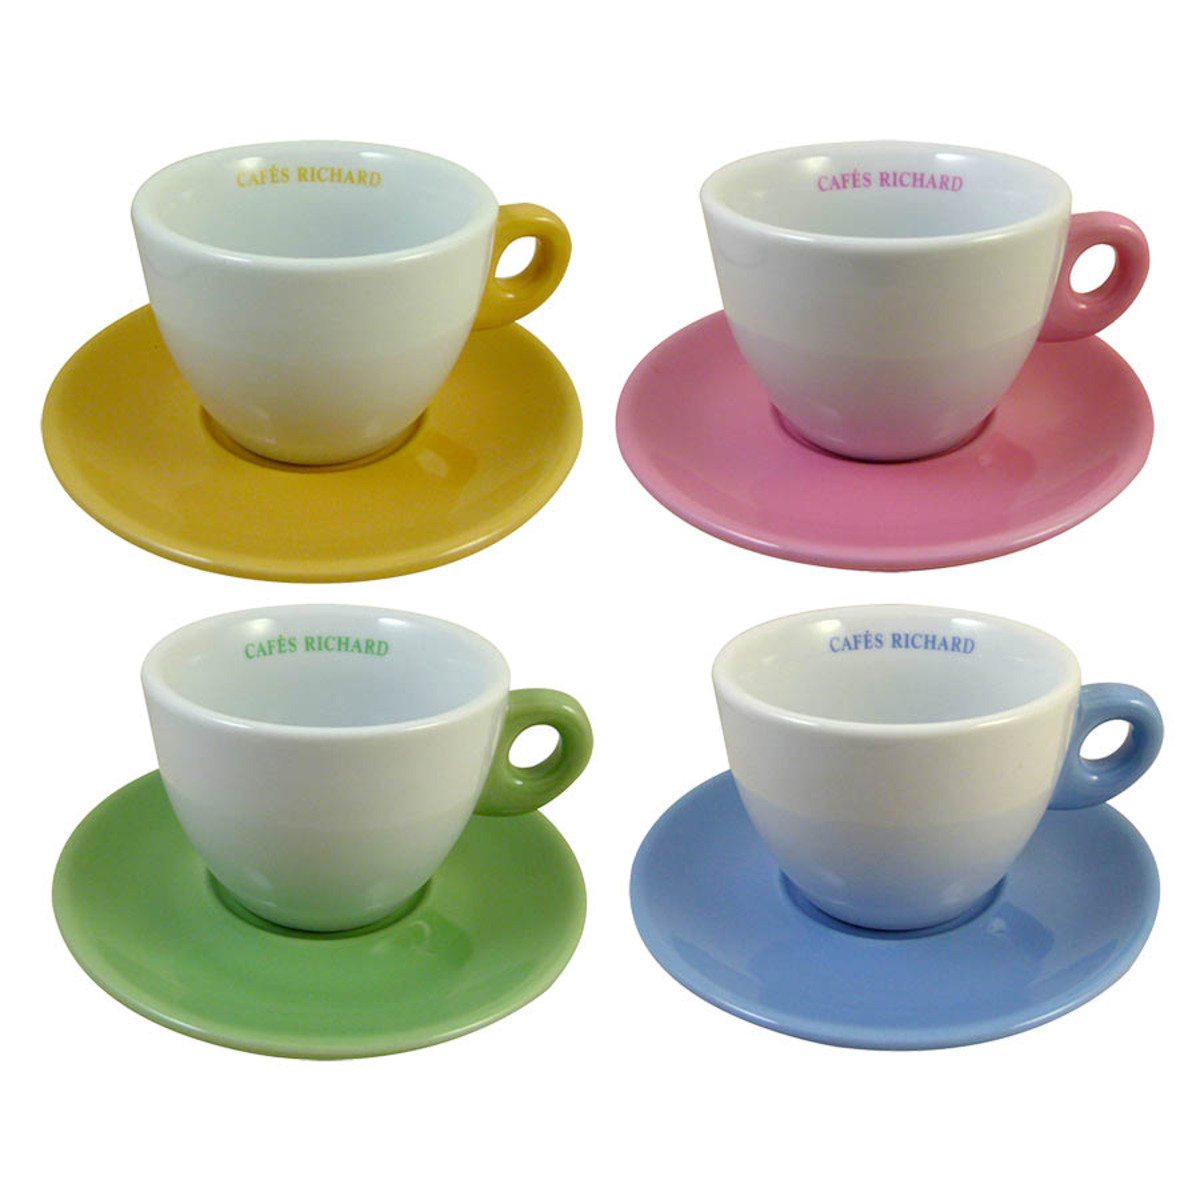 Set de 4 tasses et soucoupes thé couleurs assorties Cafés Richard